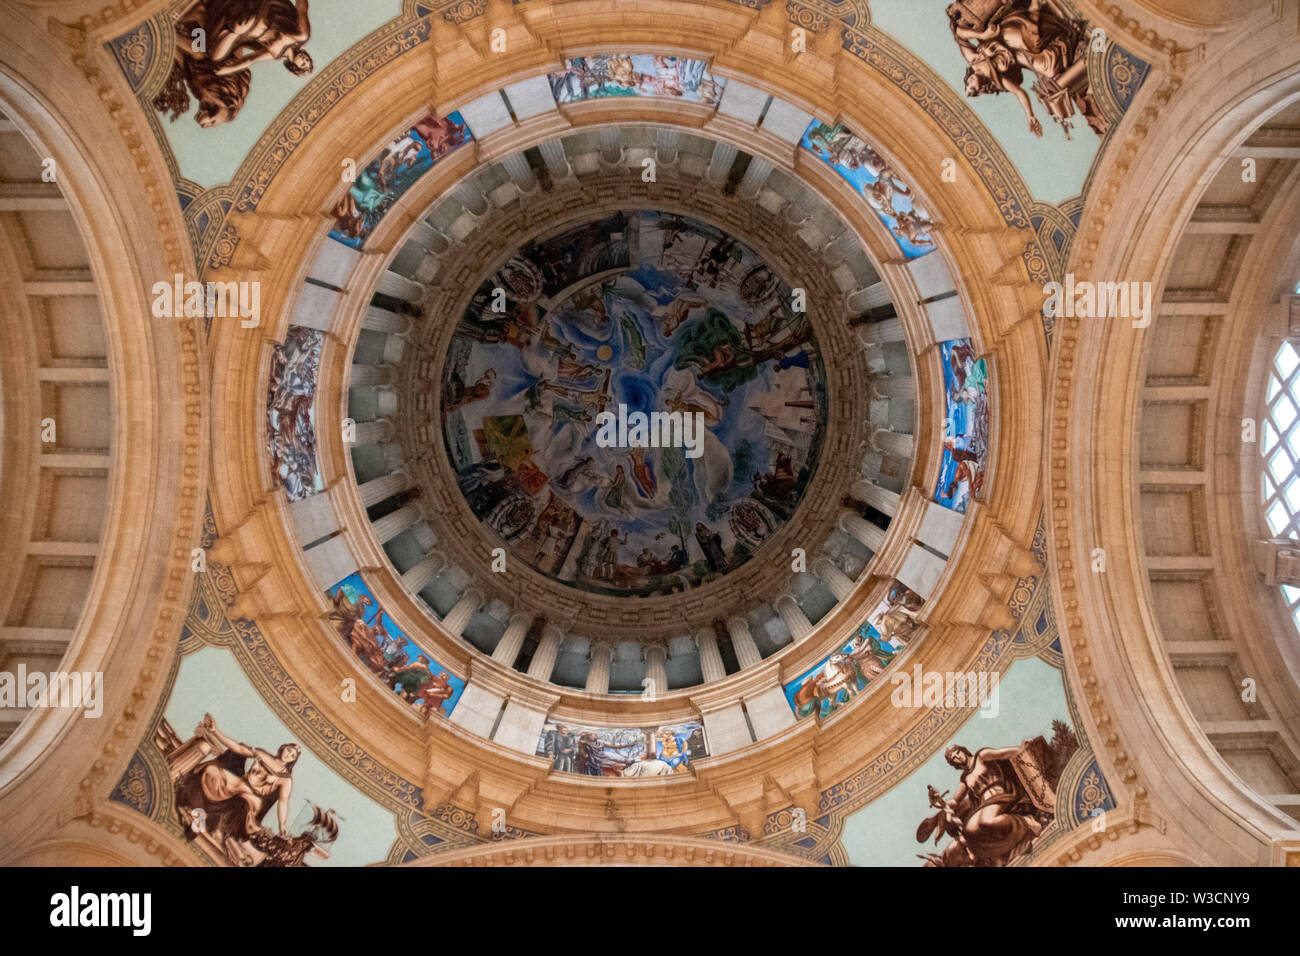 Looking up the dome from the Museu Nacional d'Art de Catalunya in Barcelona, Spain Stock Photo